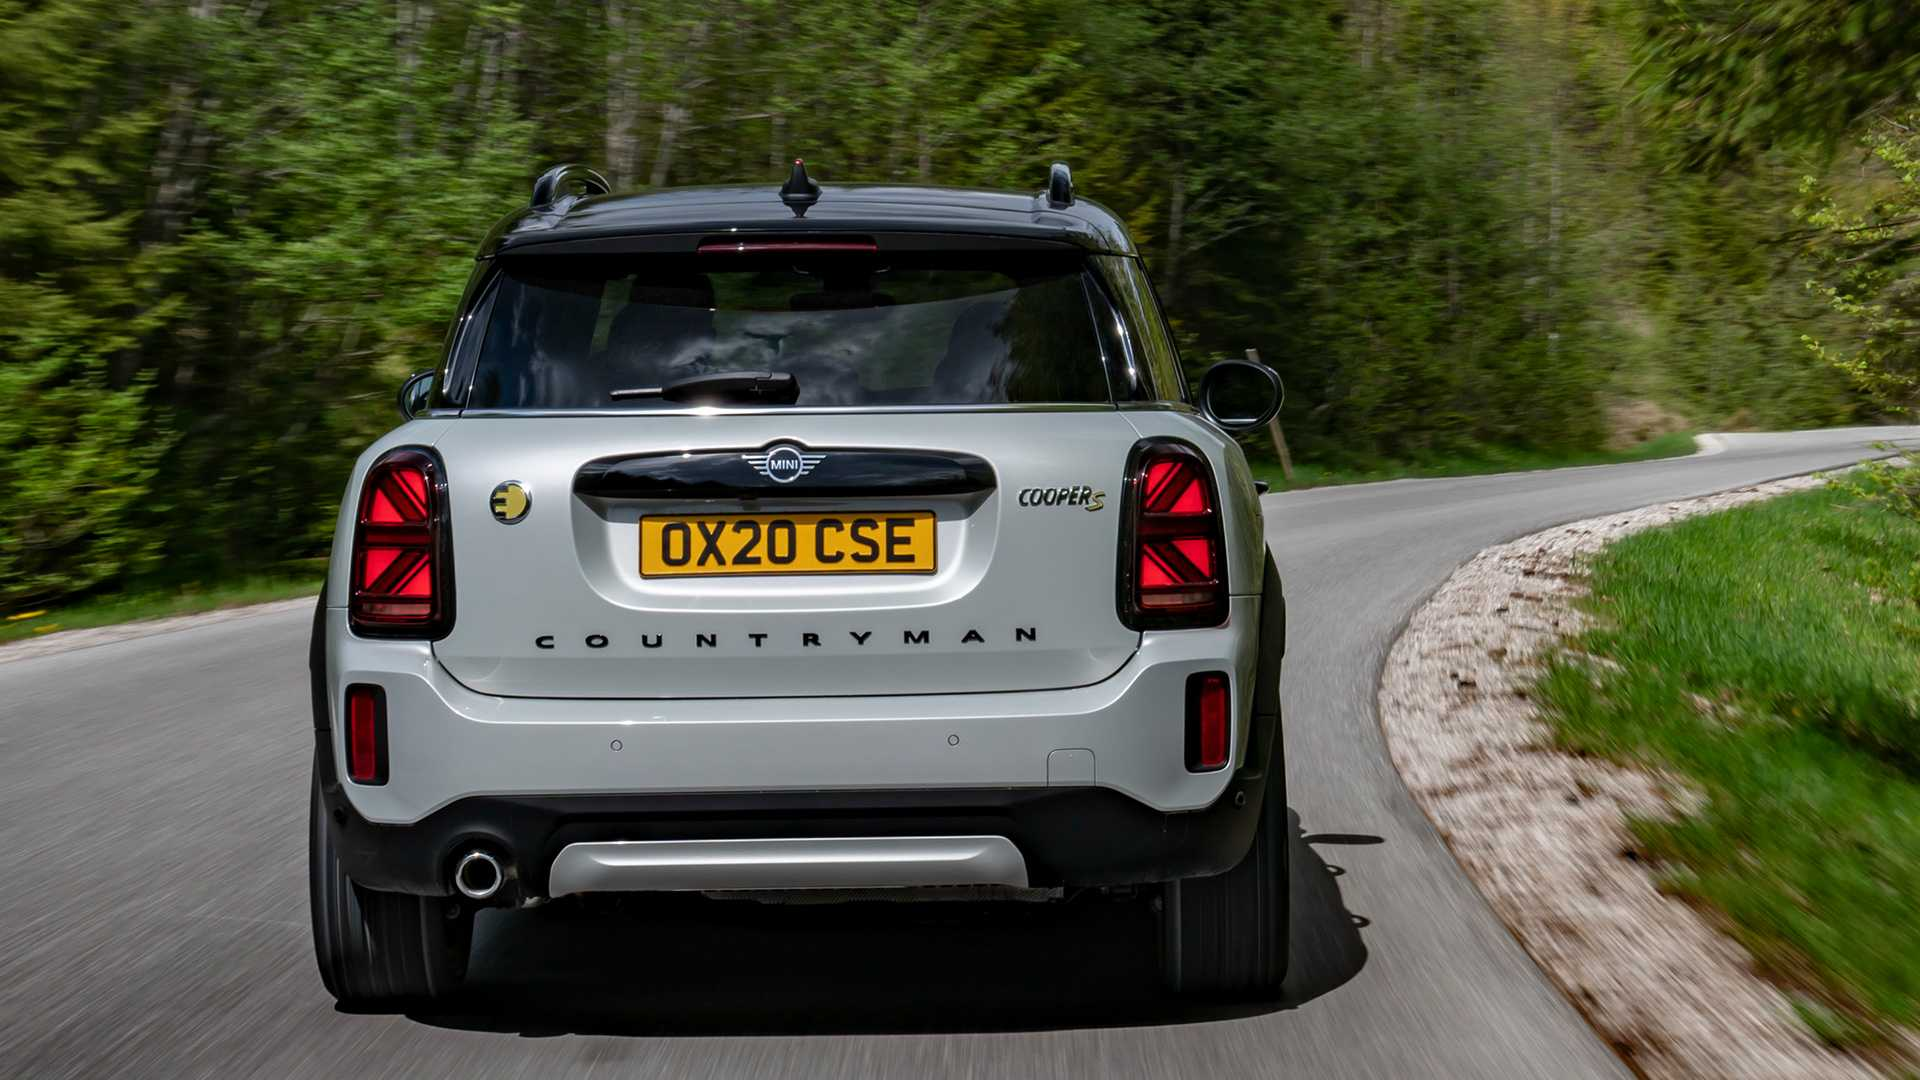 mini-cooper-se-countryman-all4-2020-4